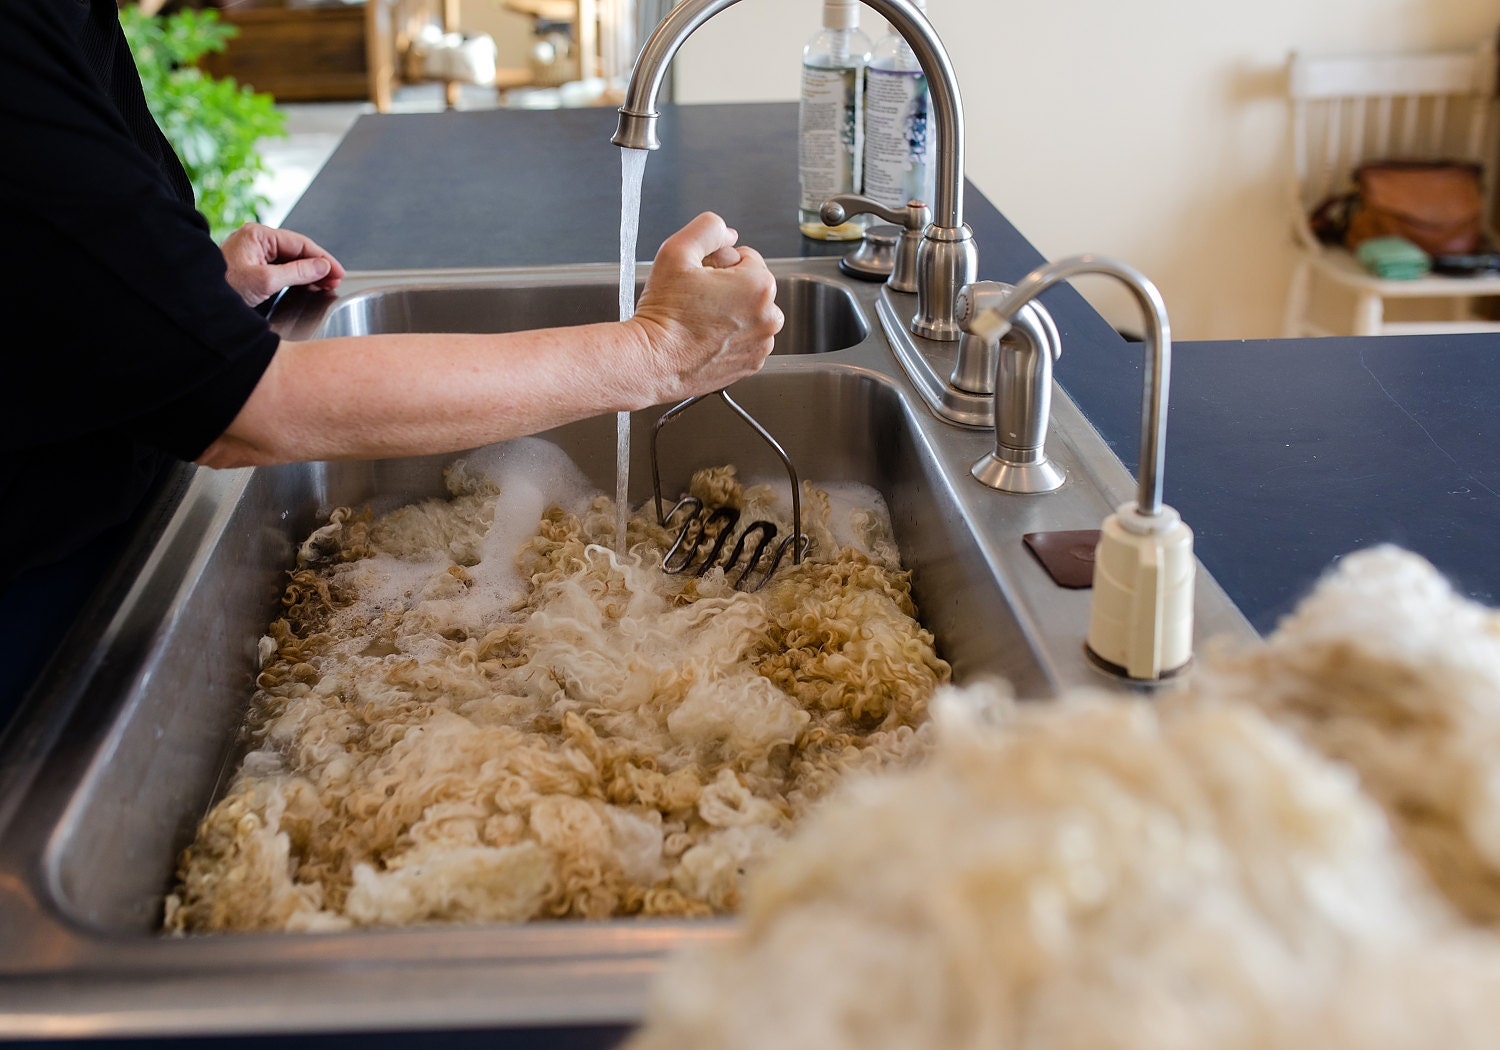 Cleaning the sheep fleece